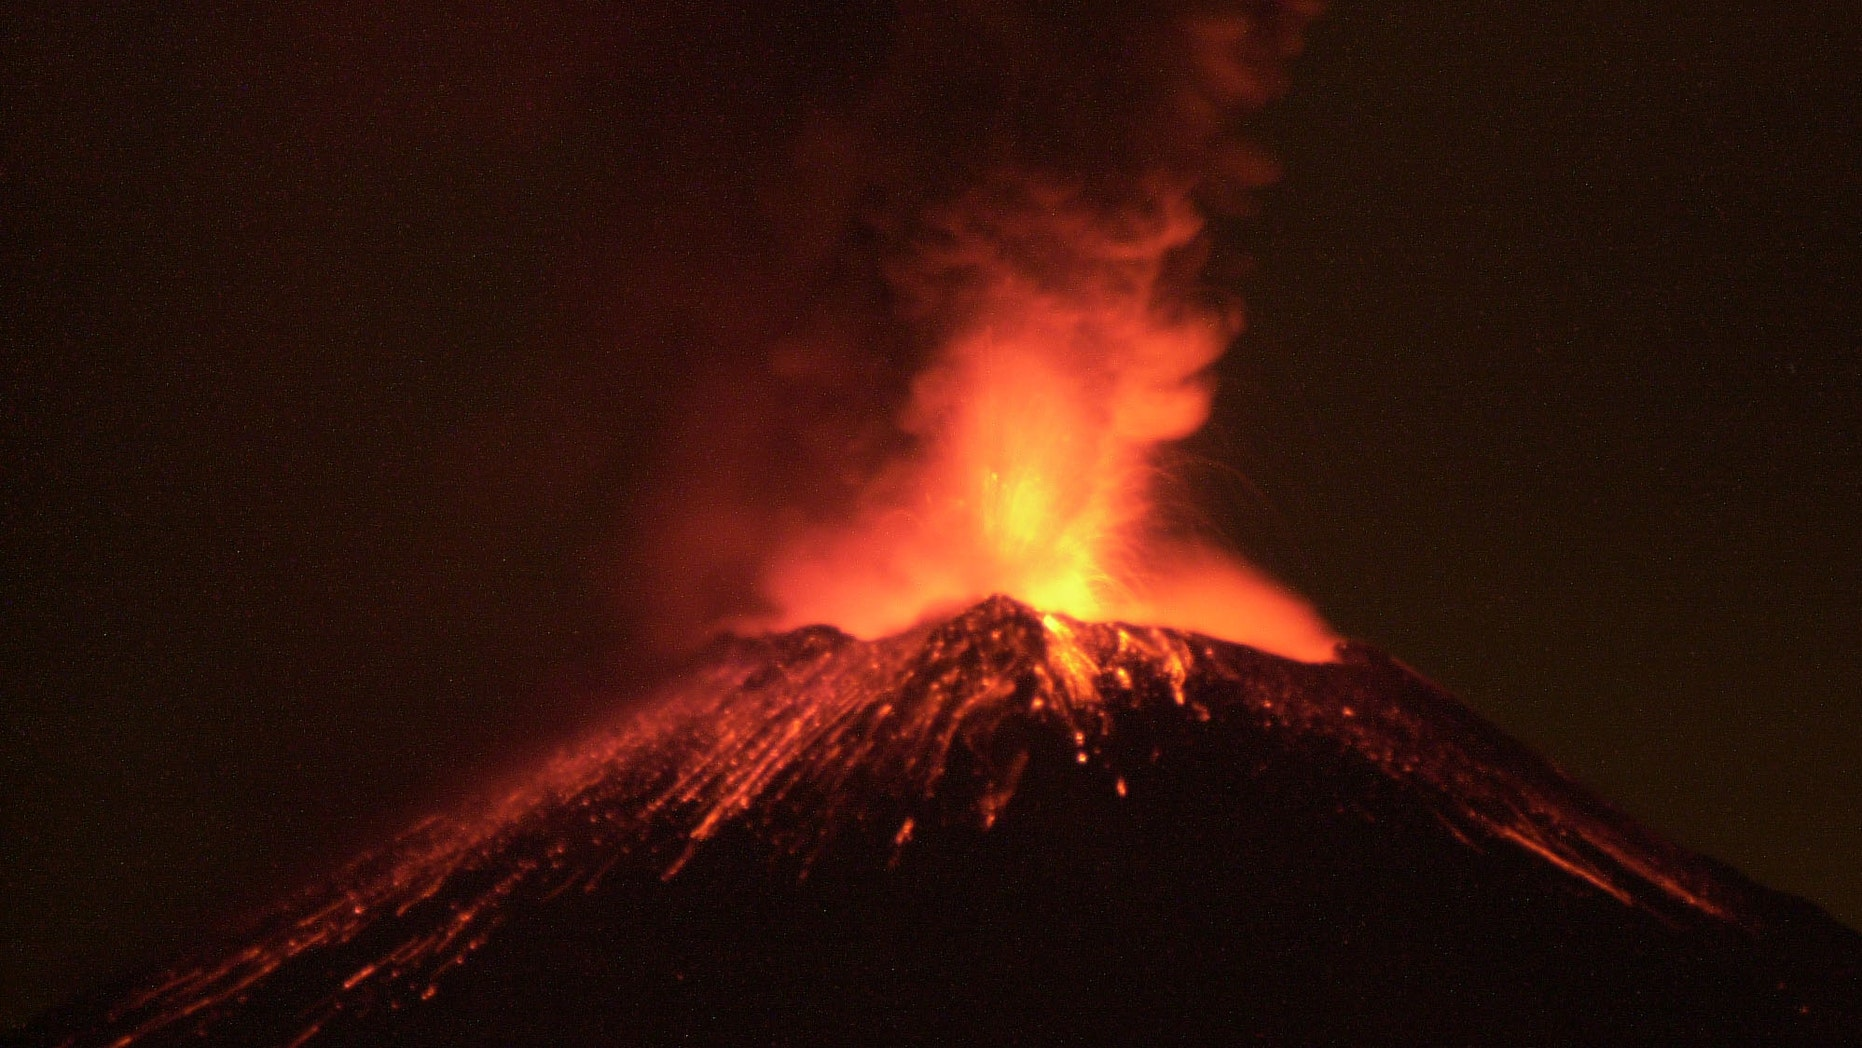 383484 01: The Popocatepetl volcano spews rocks and ash early December 19, 2000 in central Mexico. Centuries after its last catastrophic eruption, the volcano is showing signs of activity and has forced the evacuation of people from villages nearby. (Photo by Susana Gonzalez/Newsmakers)